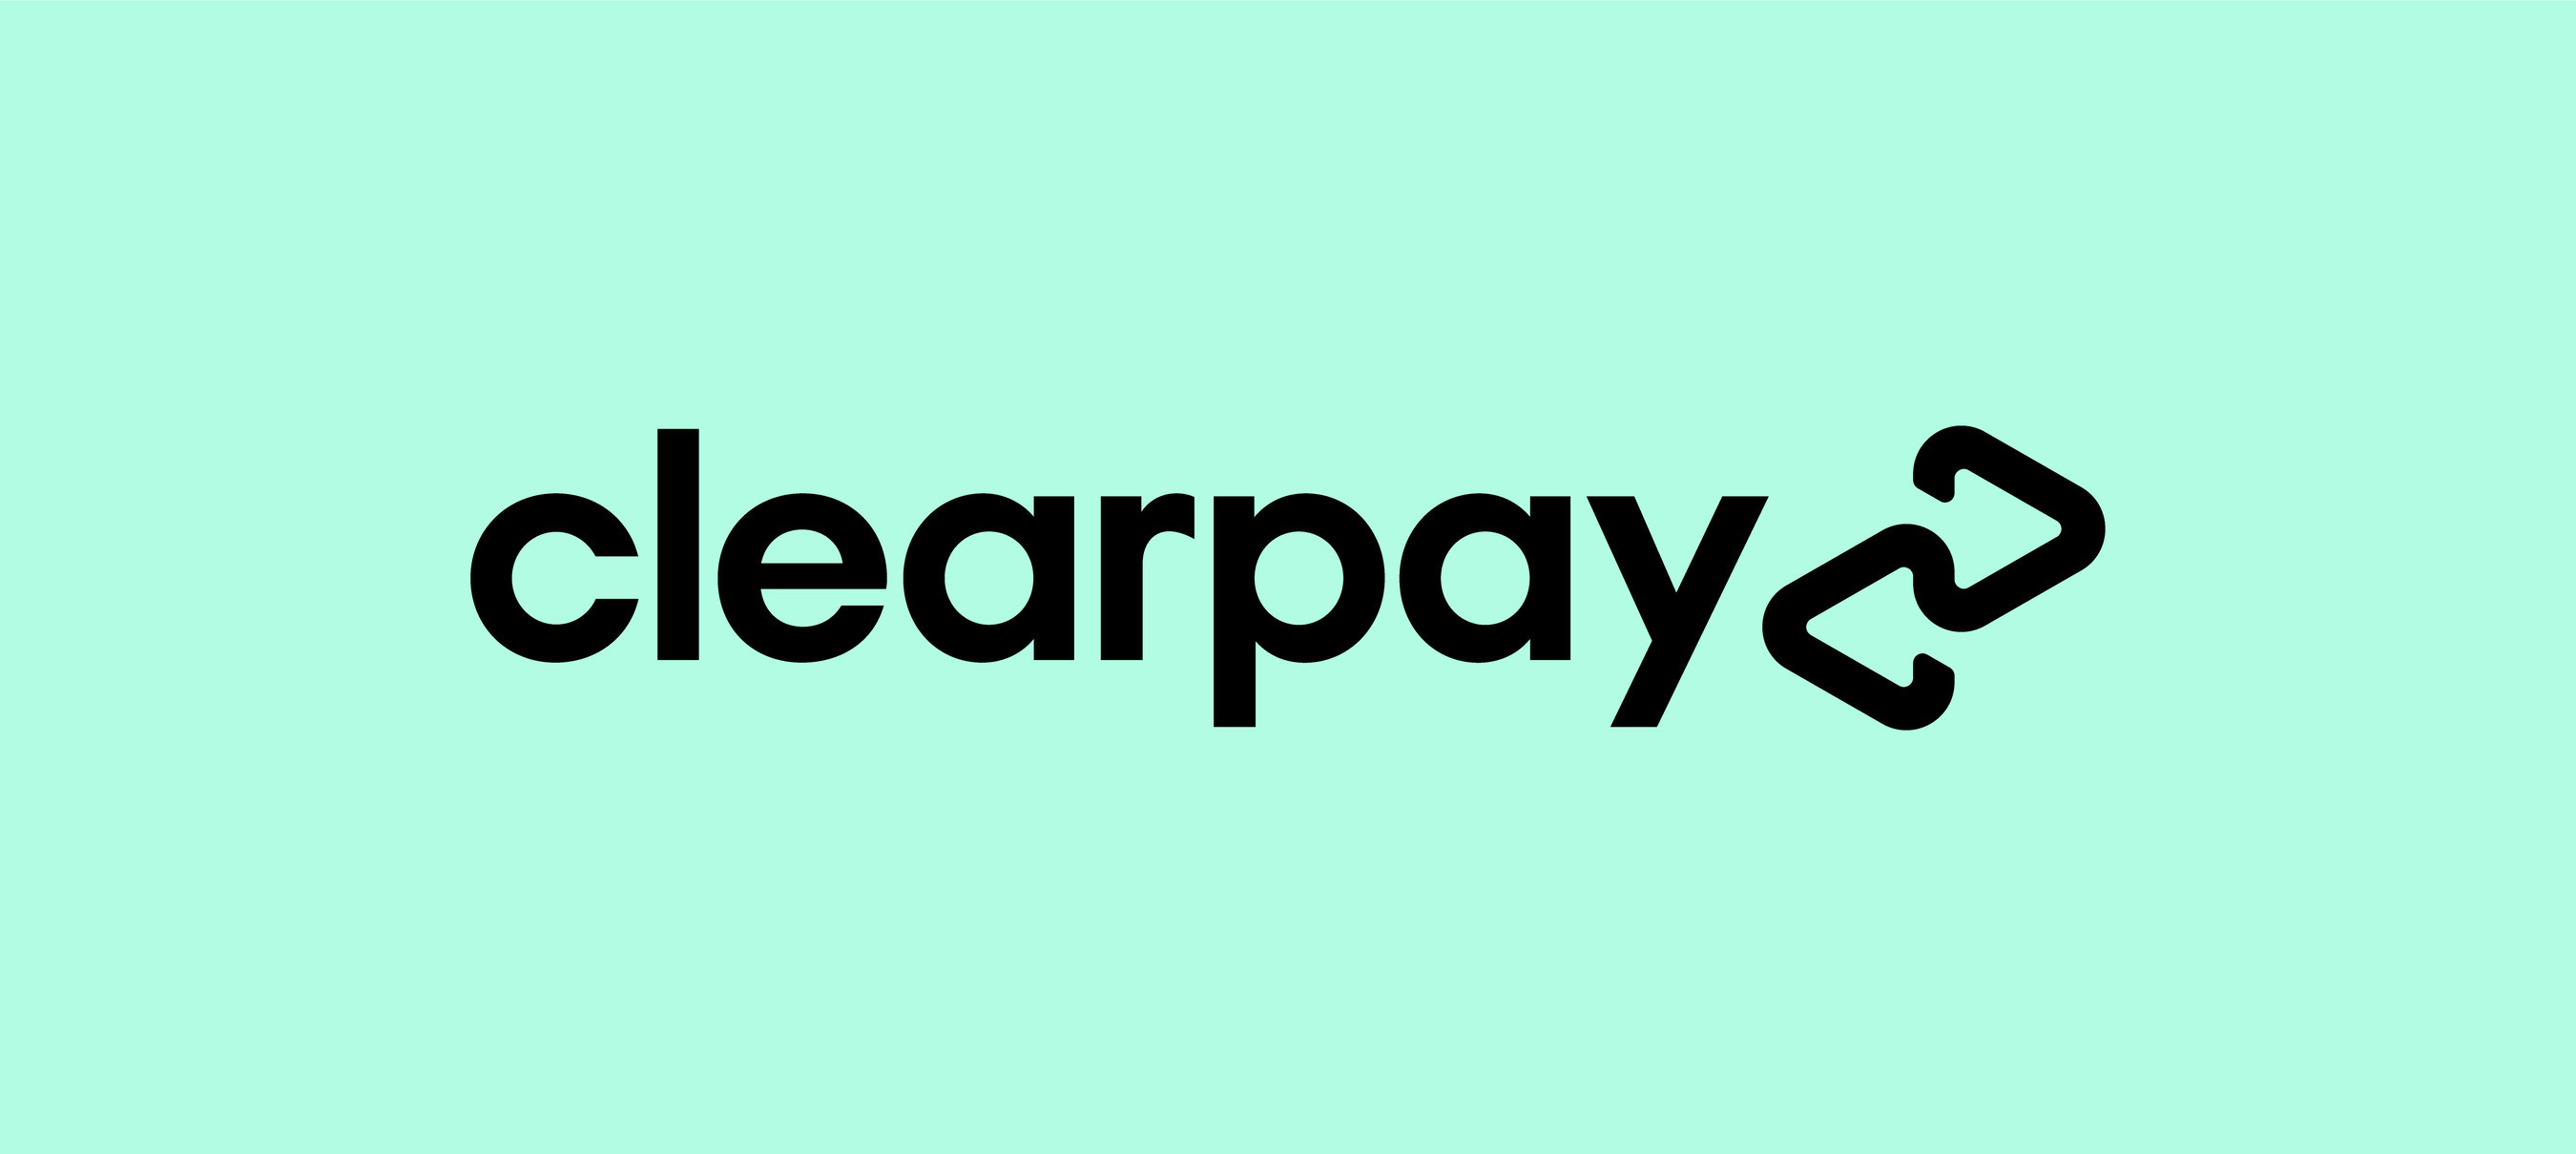 Clearpay Unveils New Brand Identity System